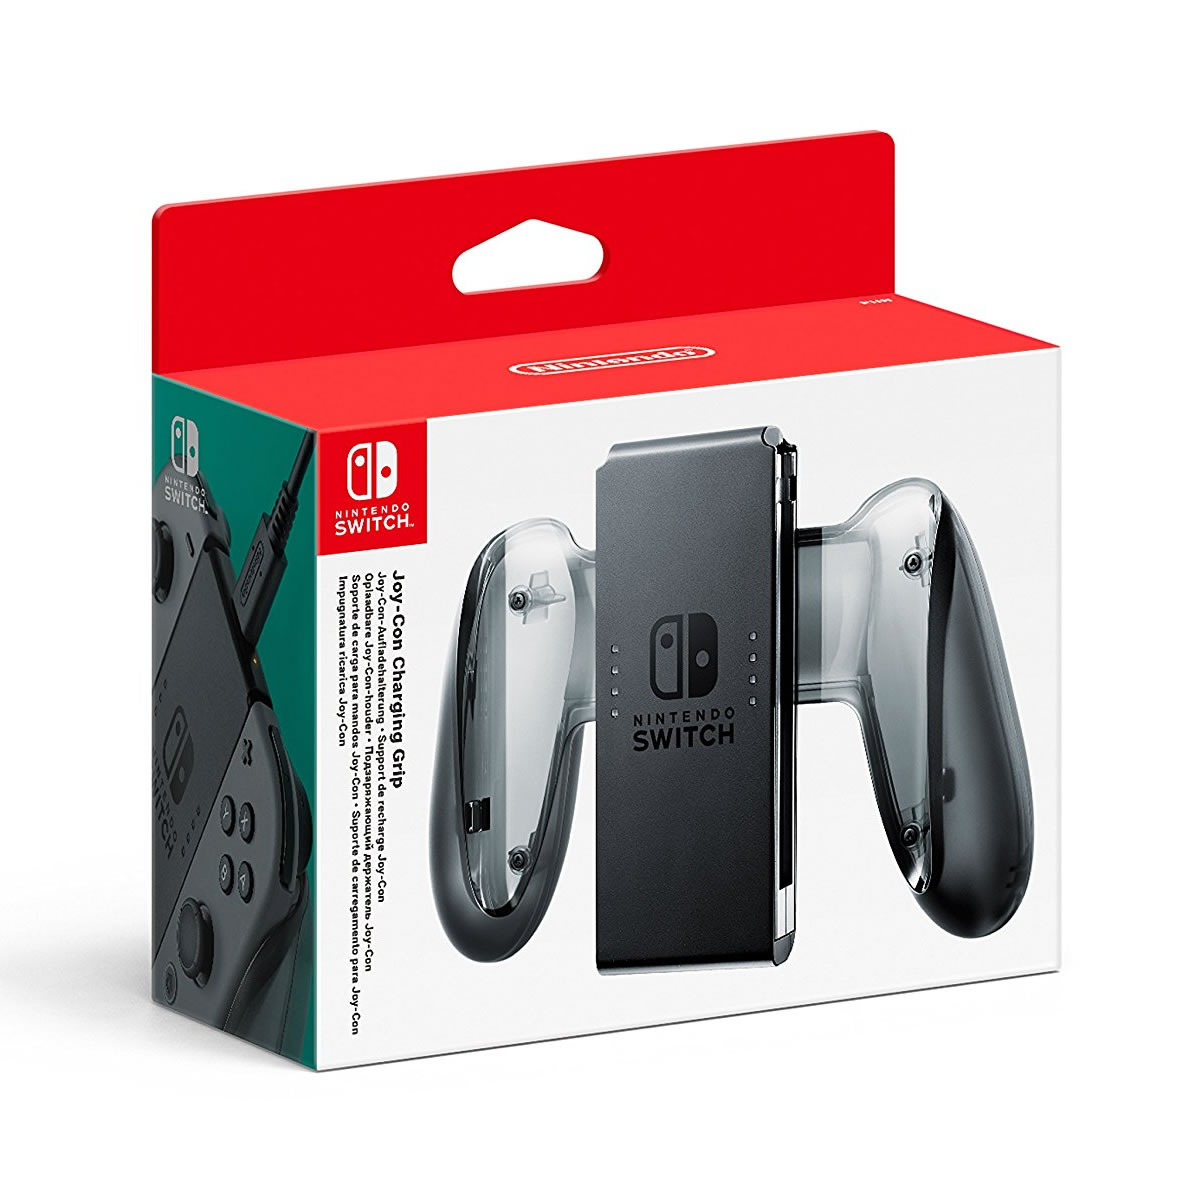 NINTENDO SWITCH JOY-CON CHARGING GRIP (NSW)